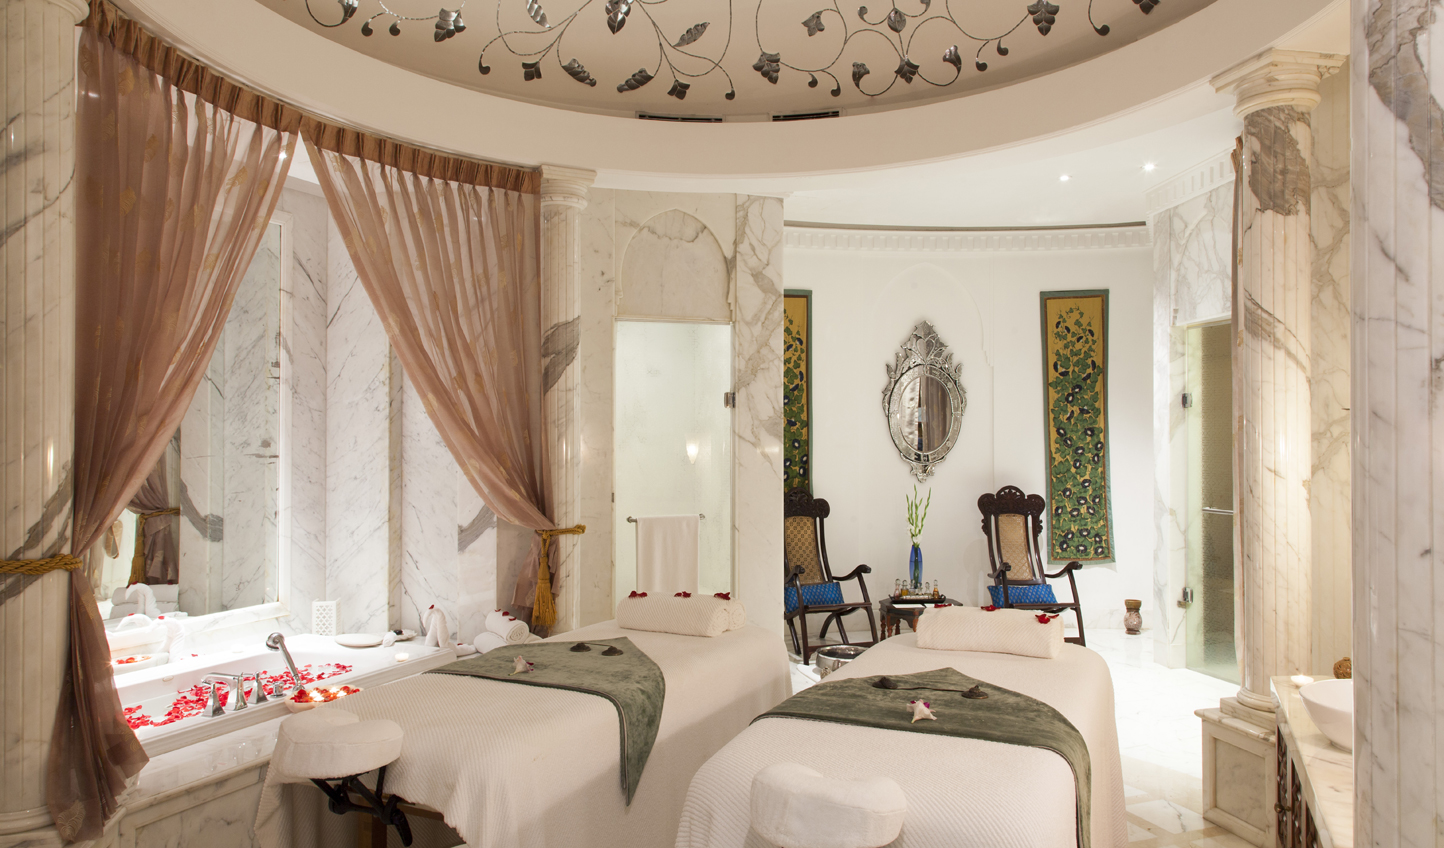 Rejuvenate in the spa after a day in the hustle and bustle of New Delhi